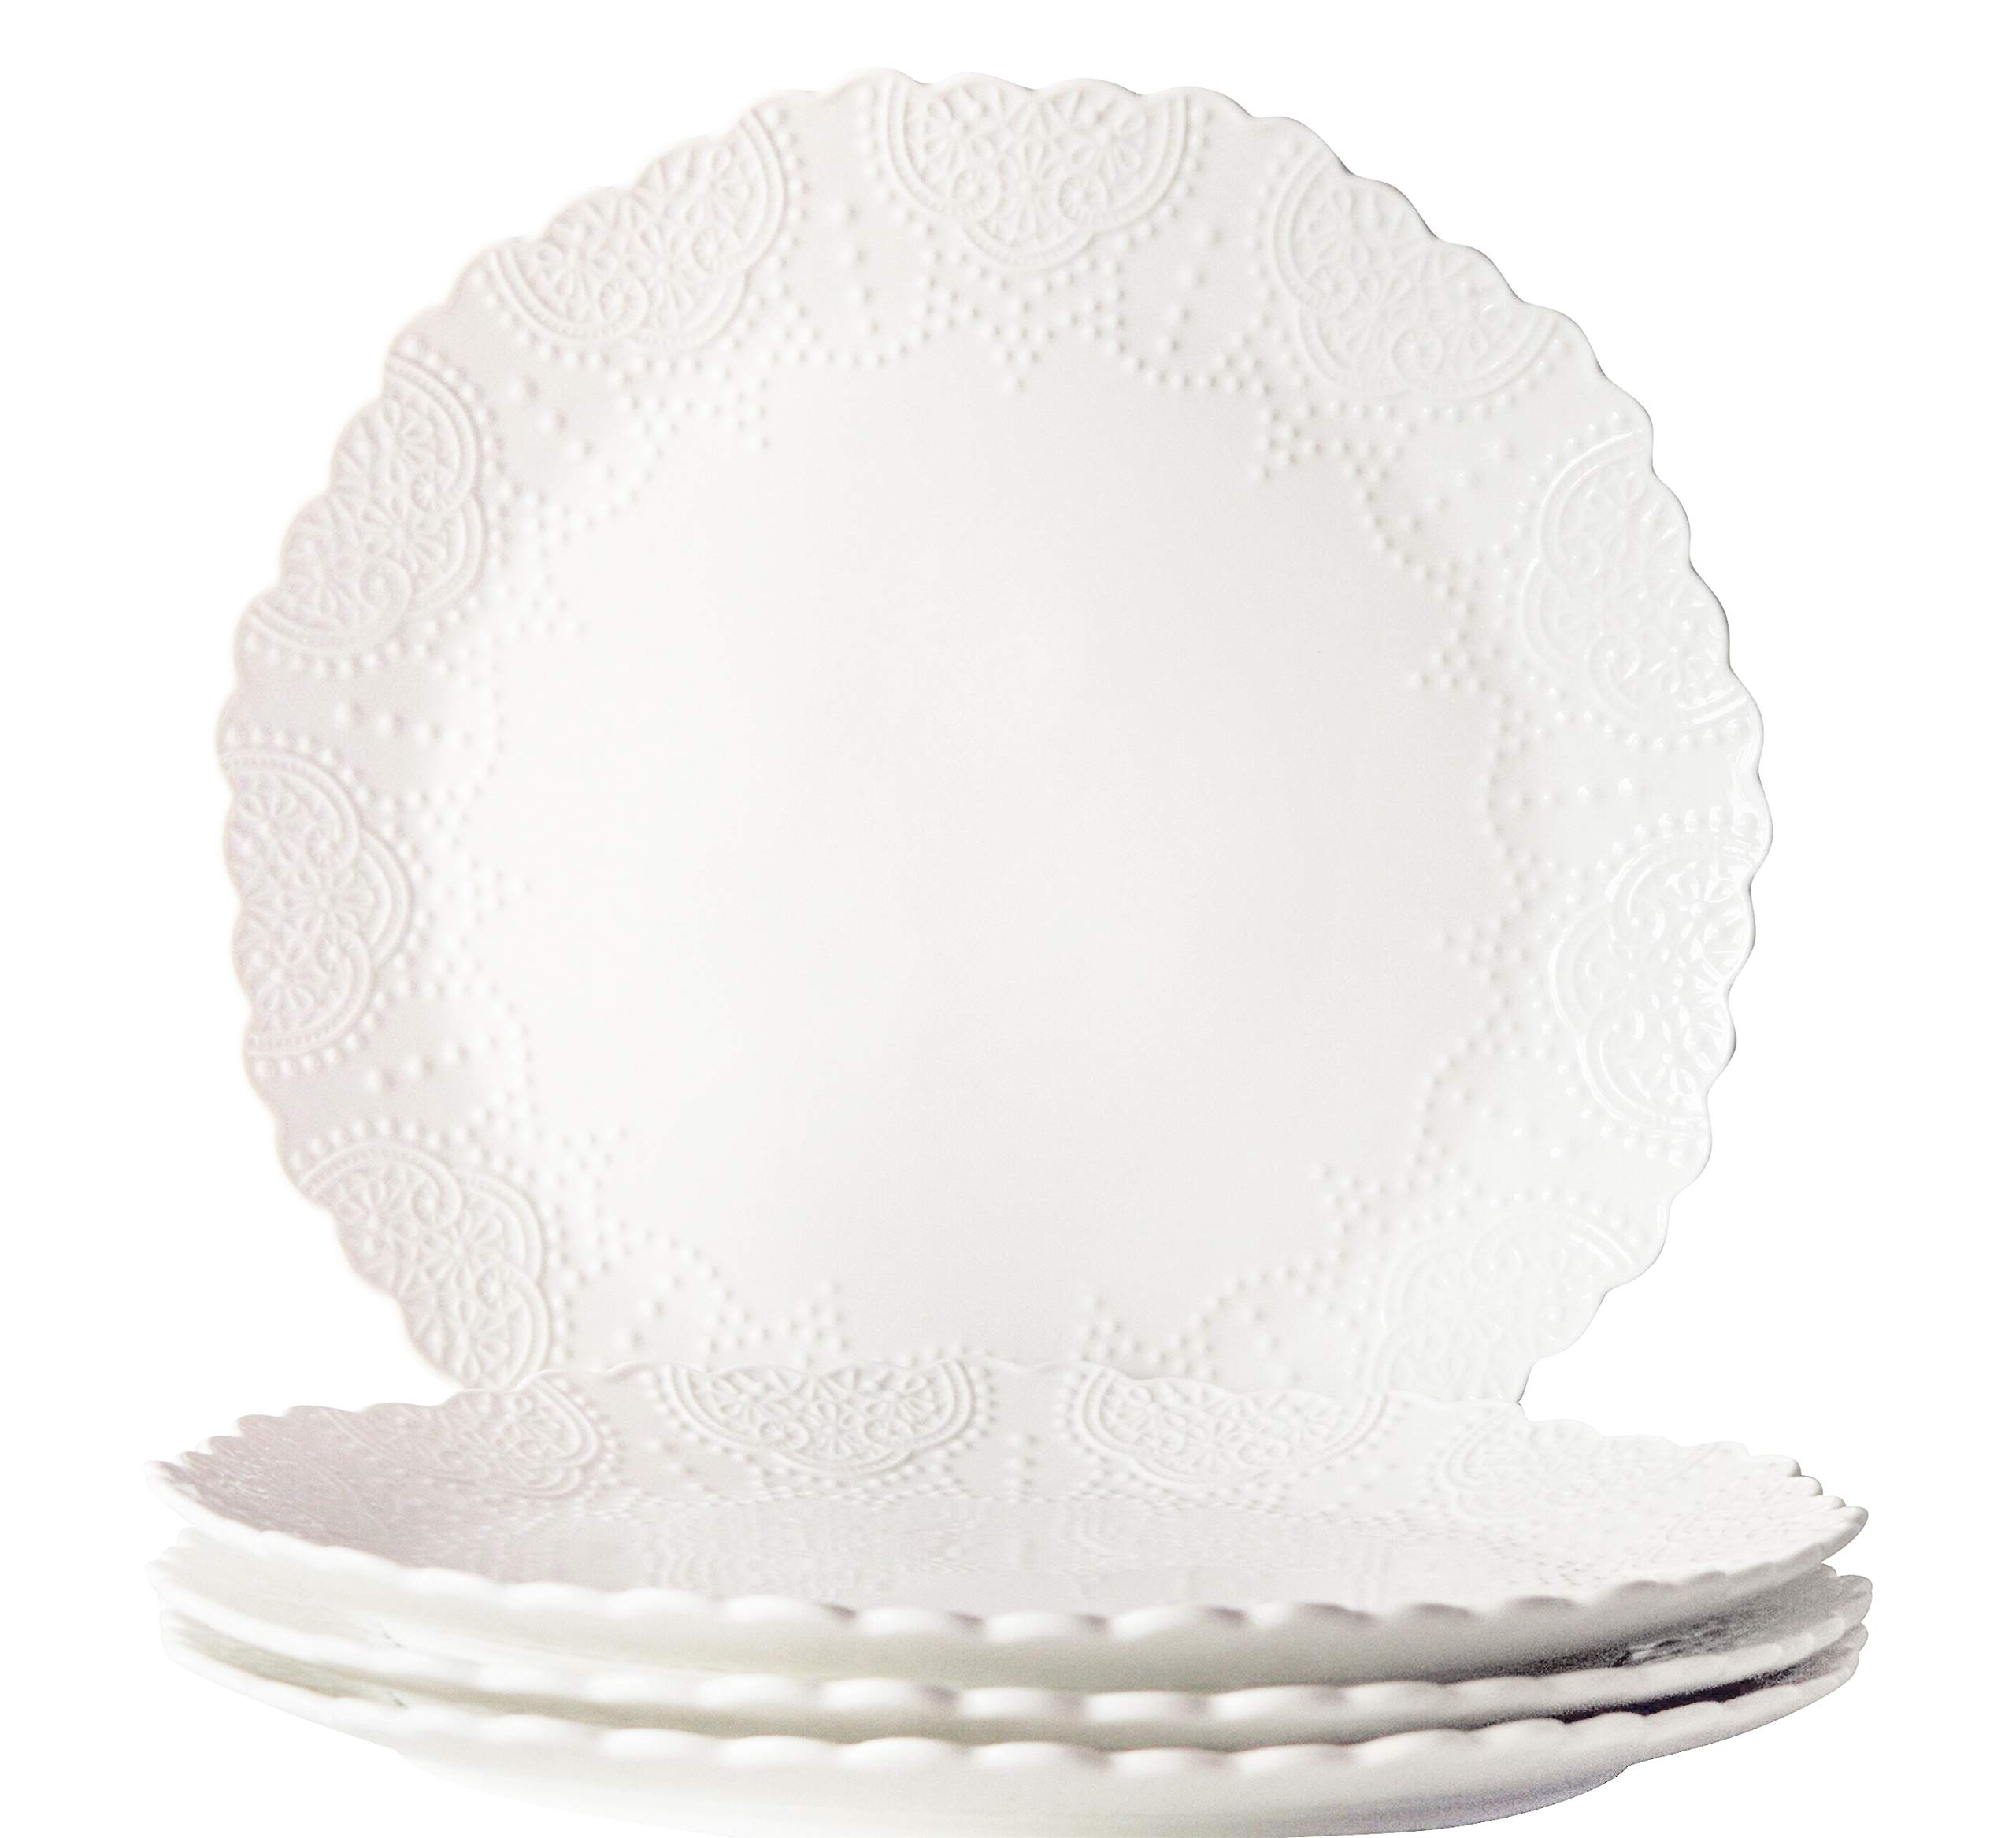 Dinner Plates Set of 4, Accent Serving Plates 10.2 Inch, Scalloped Embossed Porcelain Bone China, White